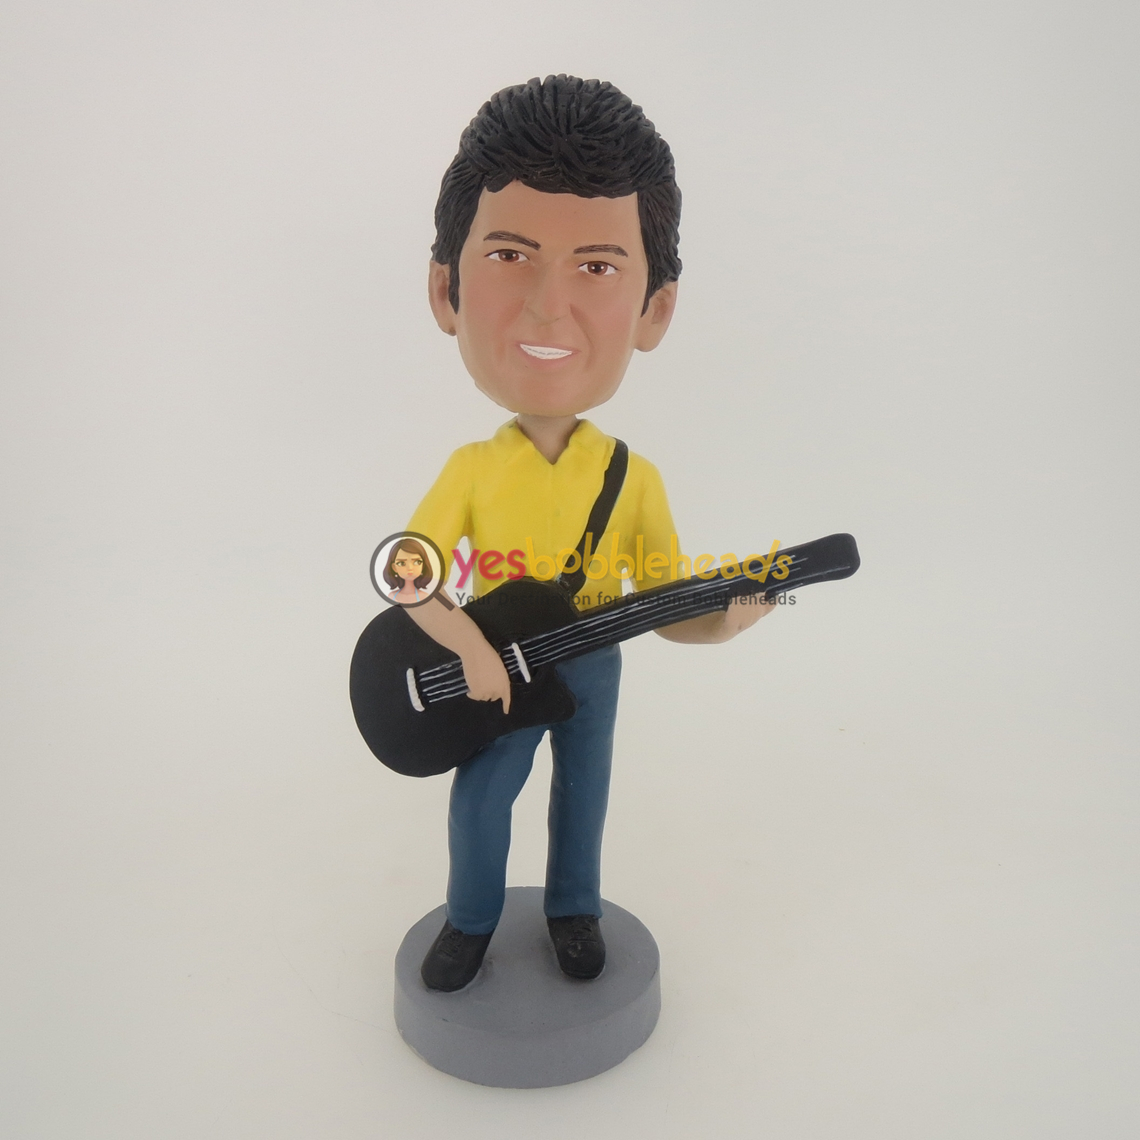 Picture of Custom Bobblehead Doll: Acoustic Guitar Man